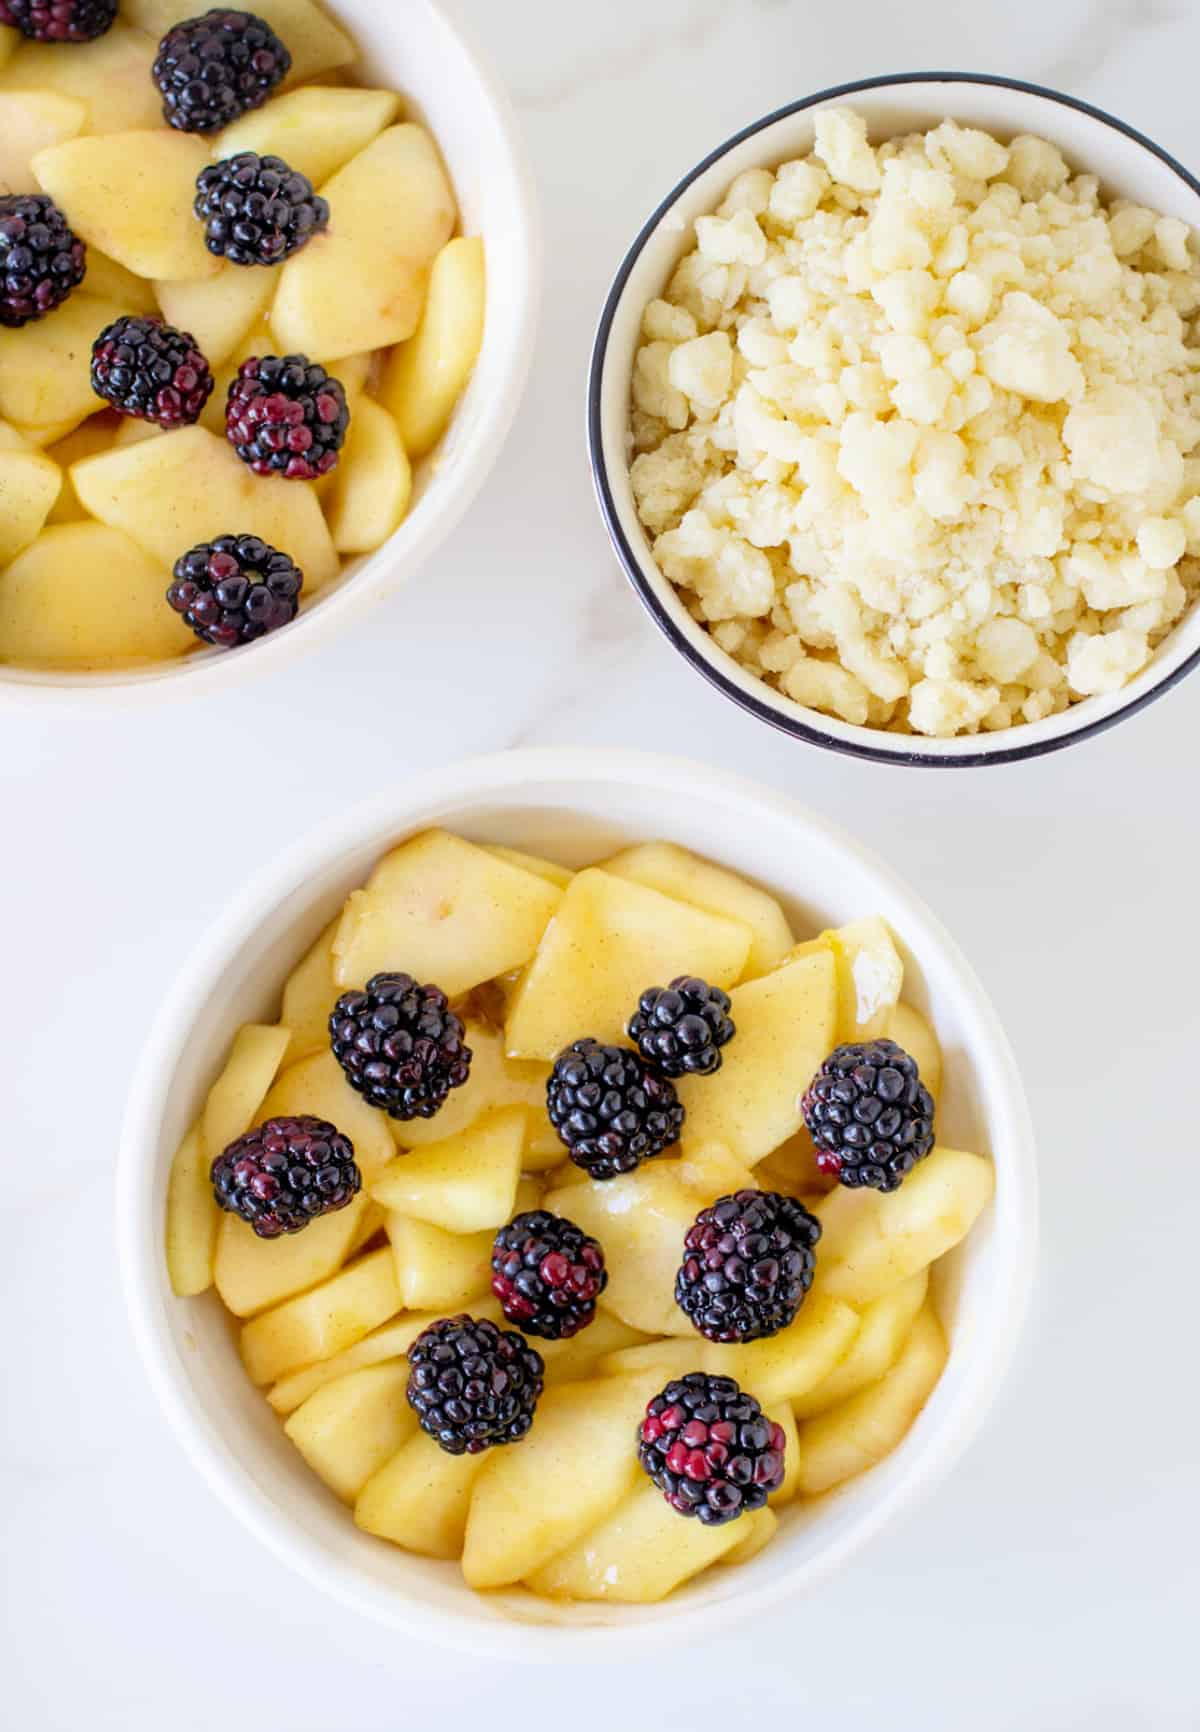 White bowls with apples and blackberries, another with crumble; marble surface